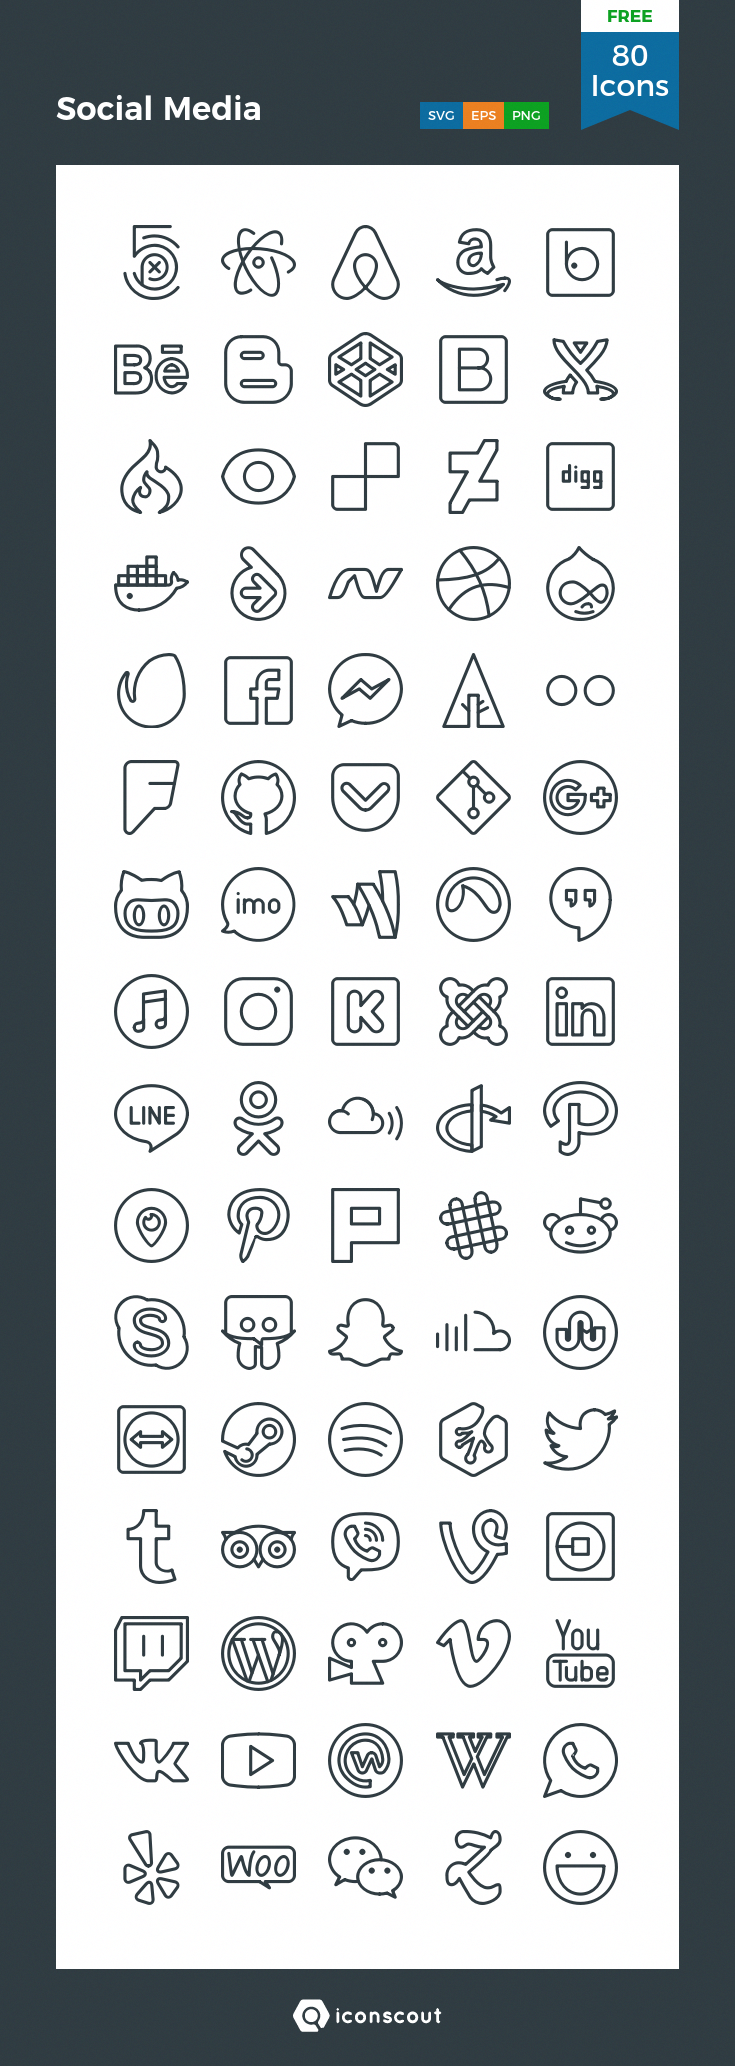 Social Media Free Icon Pack 80 Pixel Perfect Icons